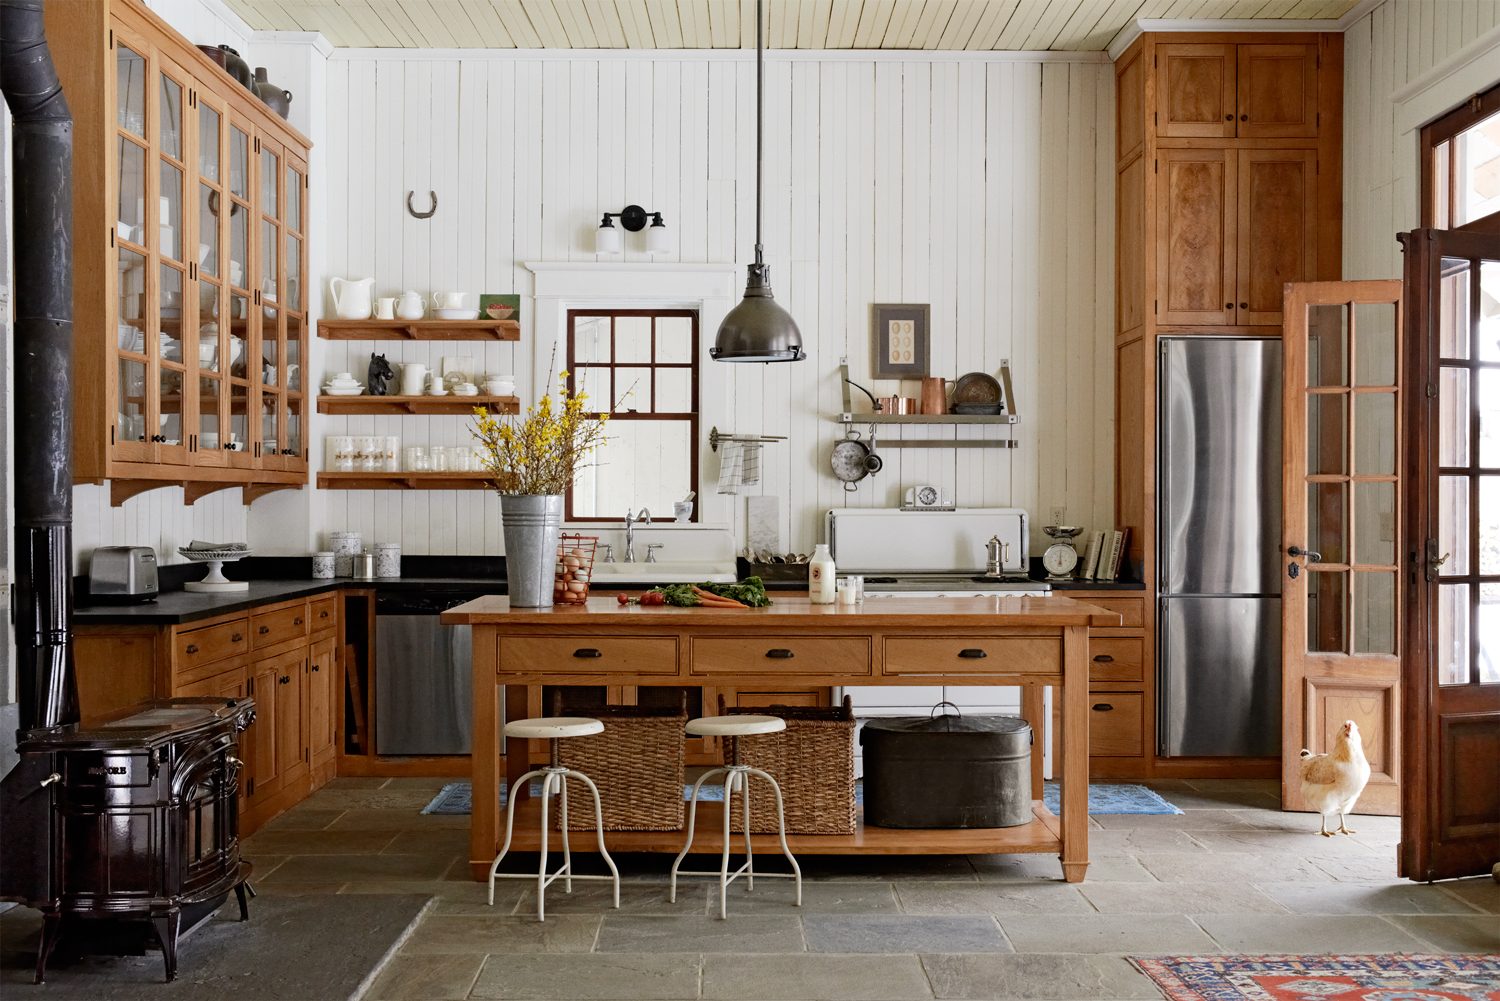 8 ways to add authentic farmhouse style to your kitchen - Country style kitchen cabinets design ...